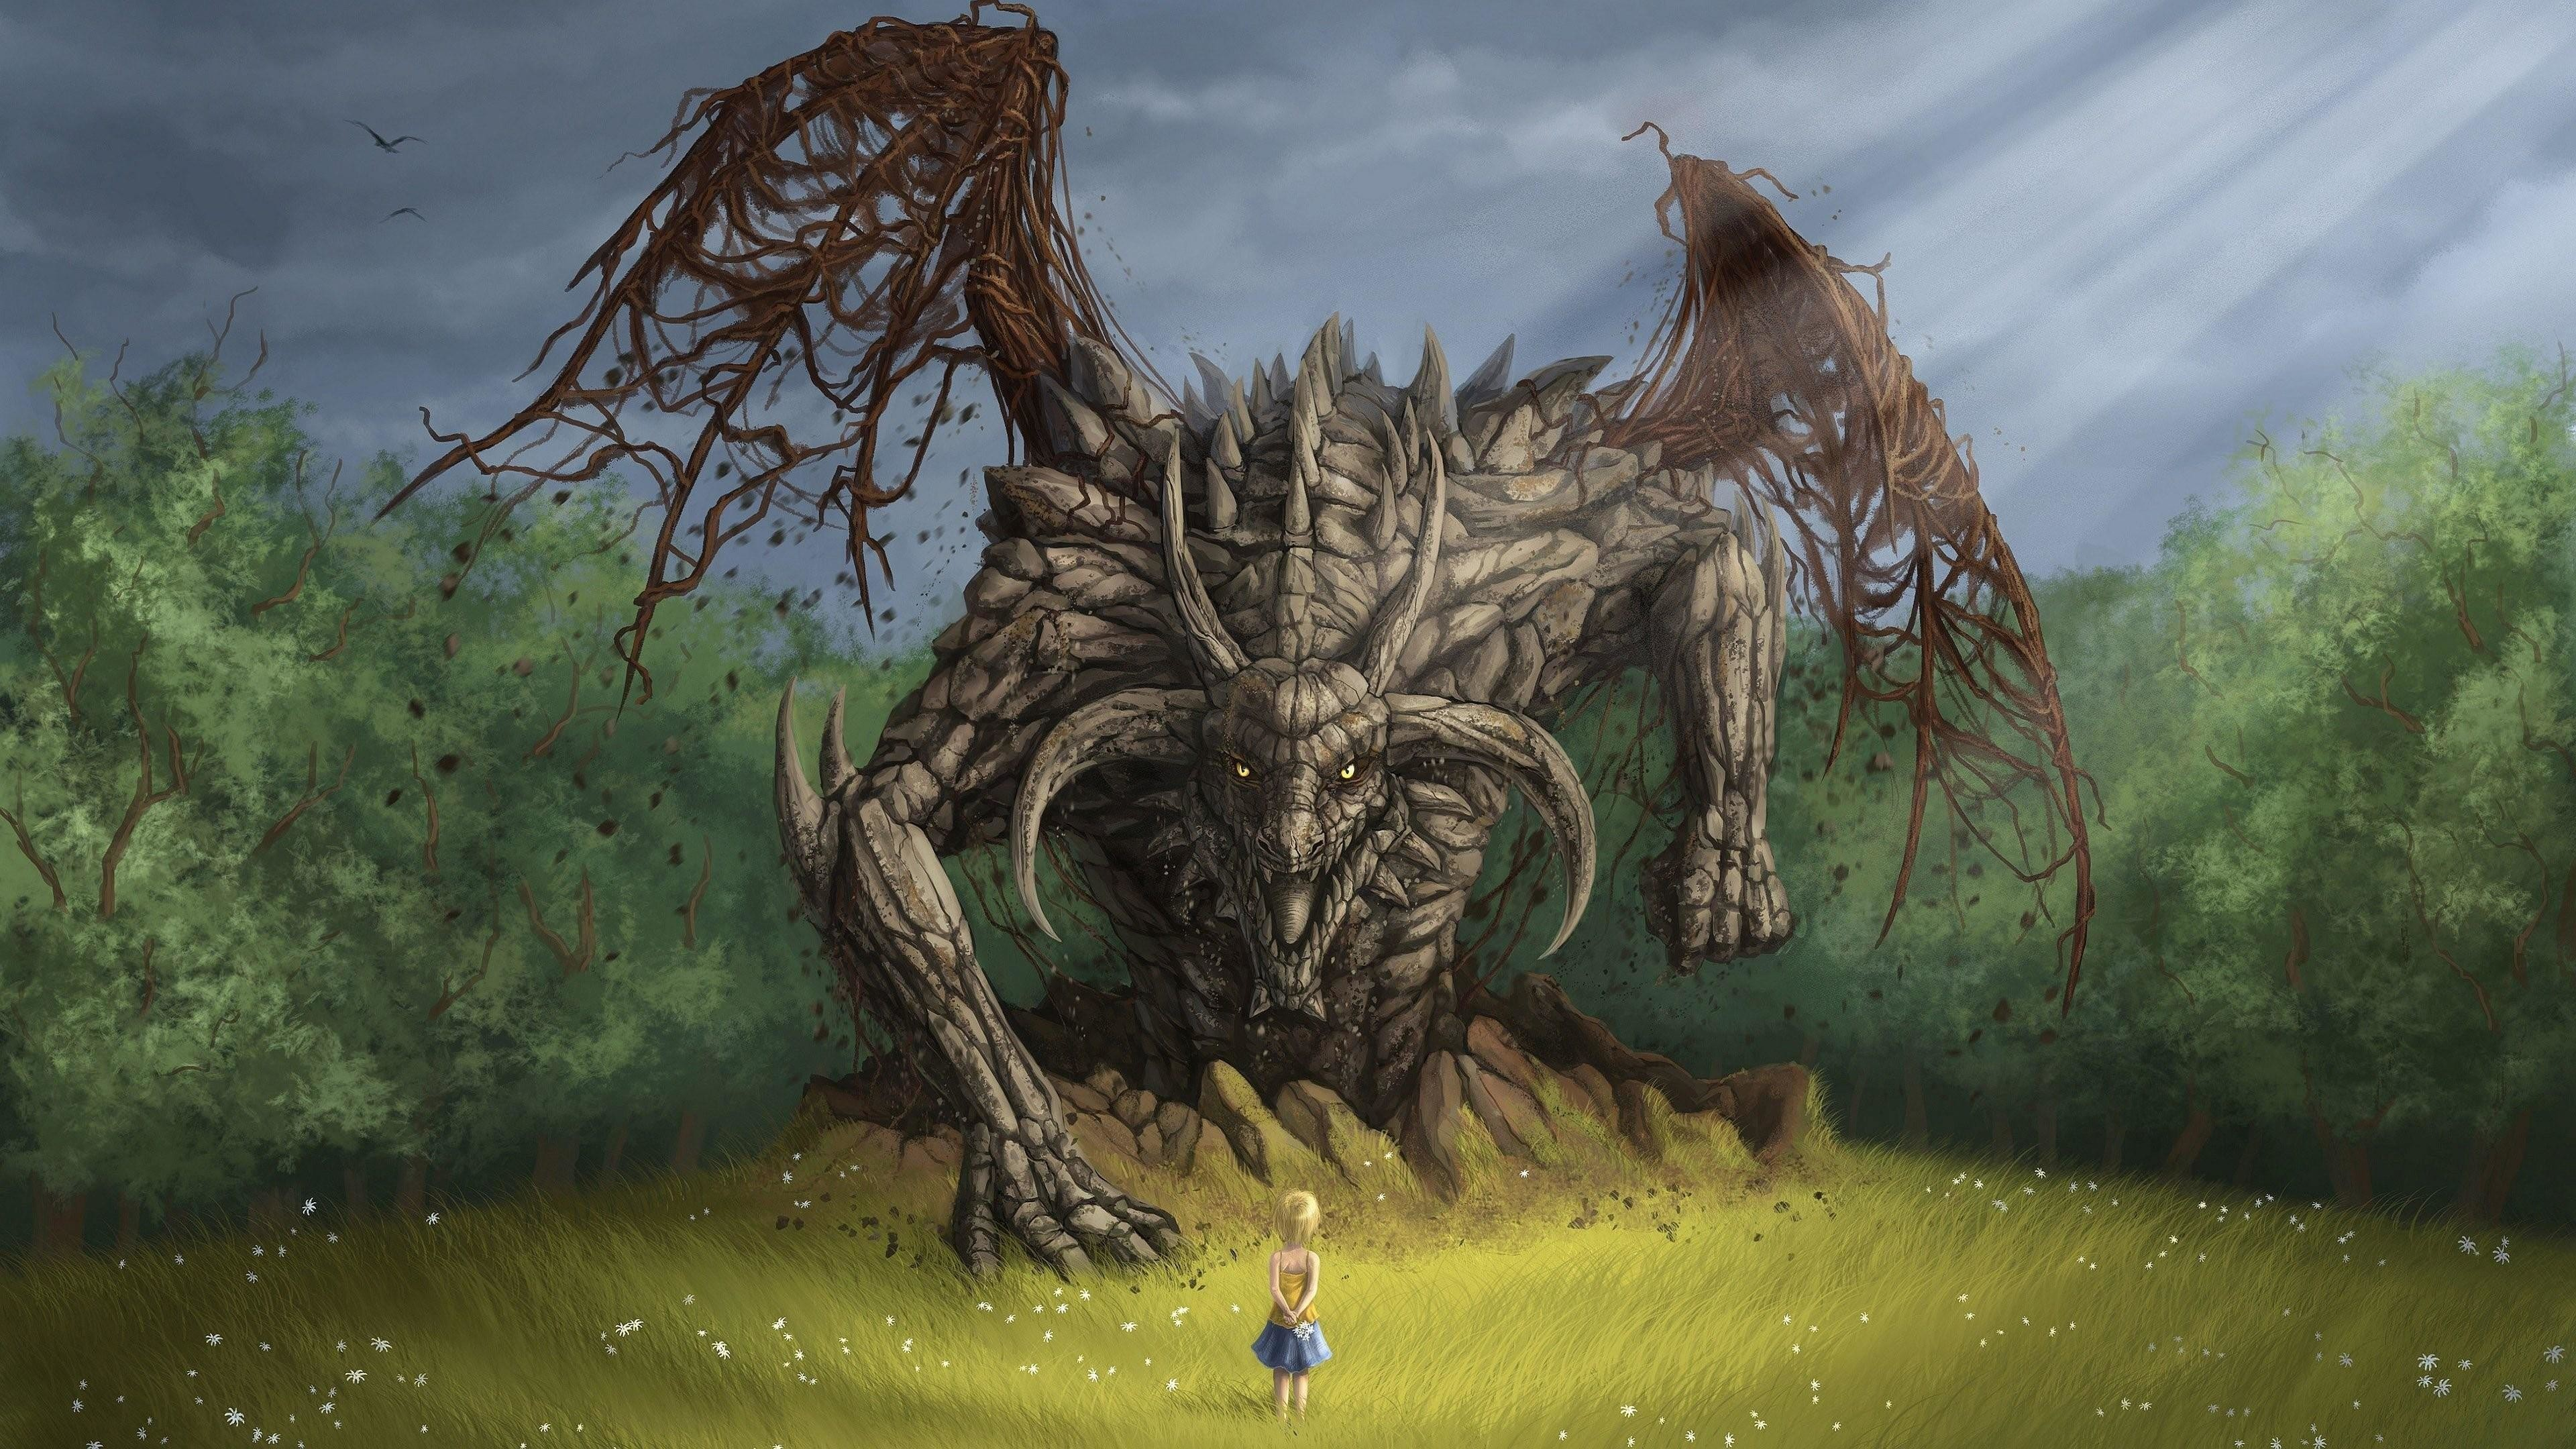 Res: 3840x2160, Advice Scary Dragon Pictures And A Little Girl Fantasy Art Wallpaper